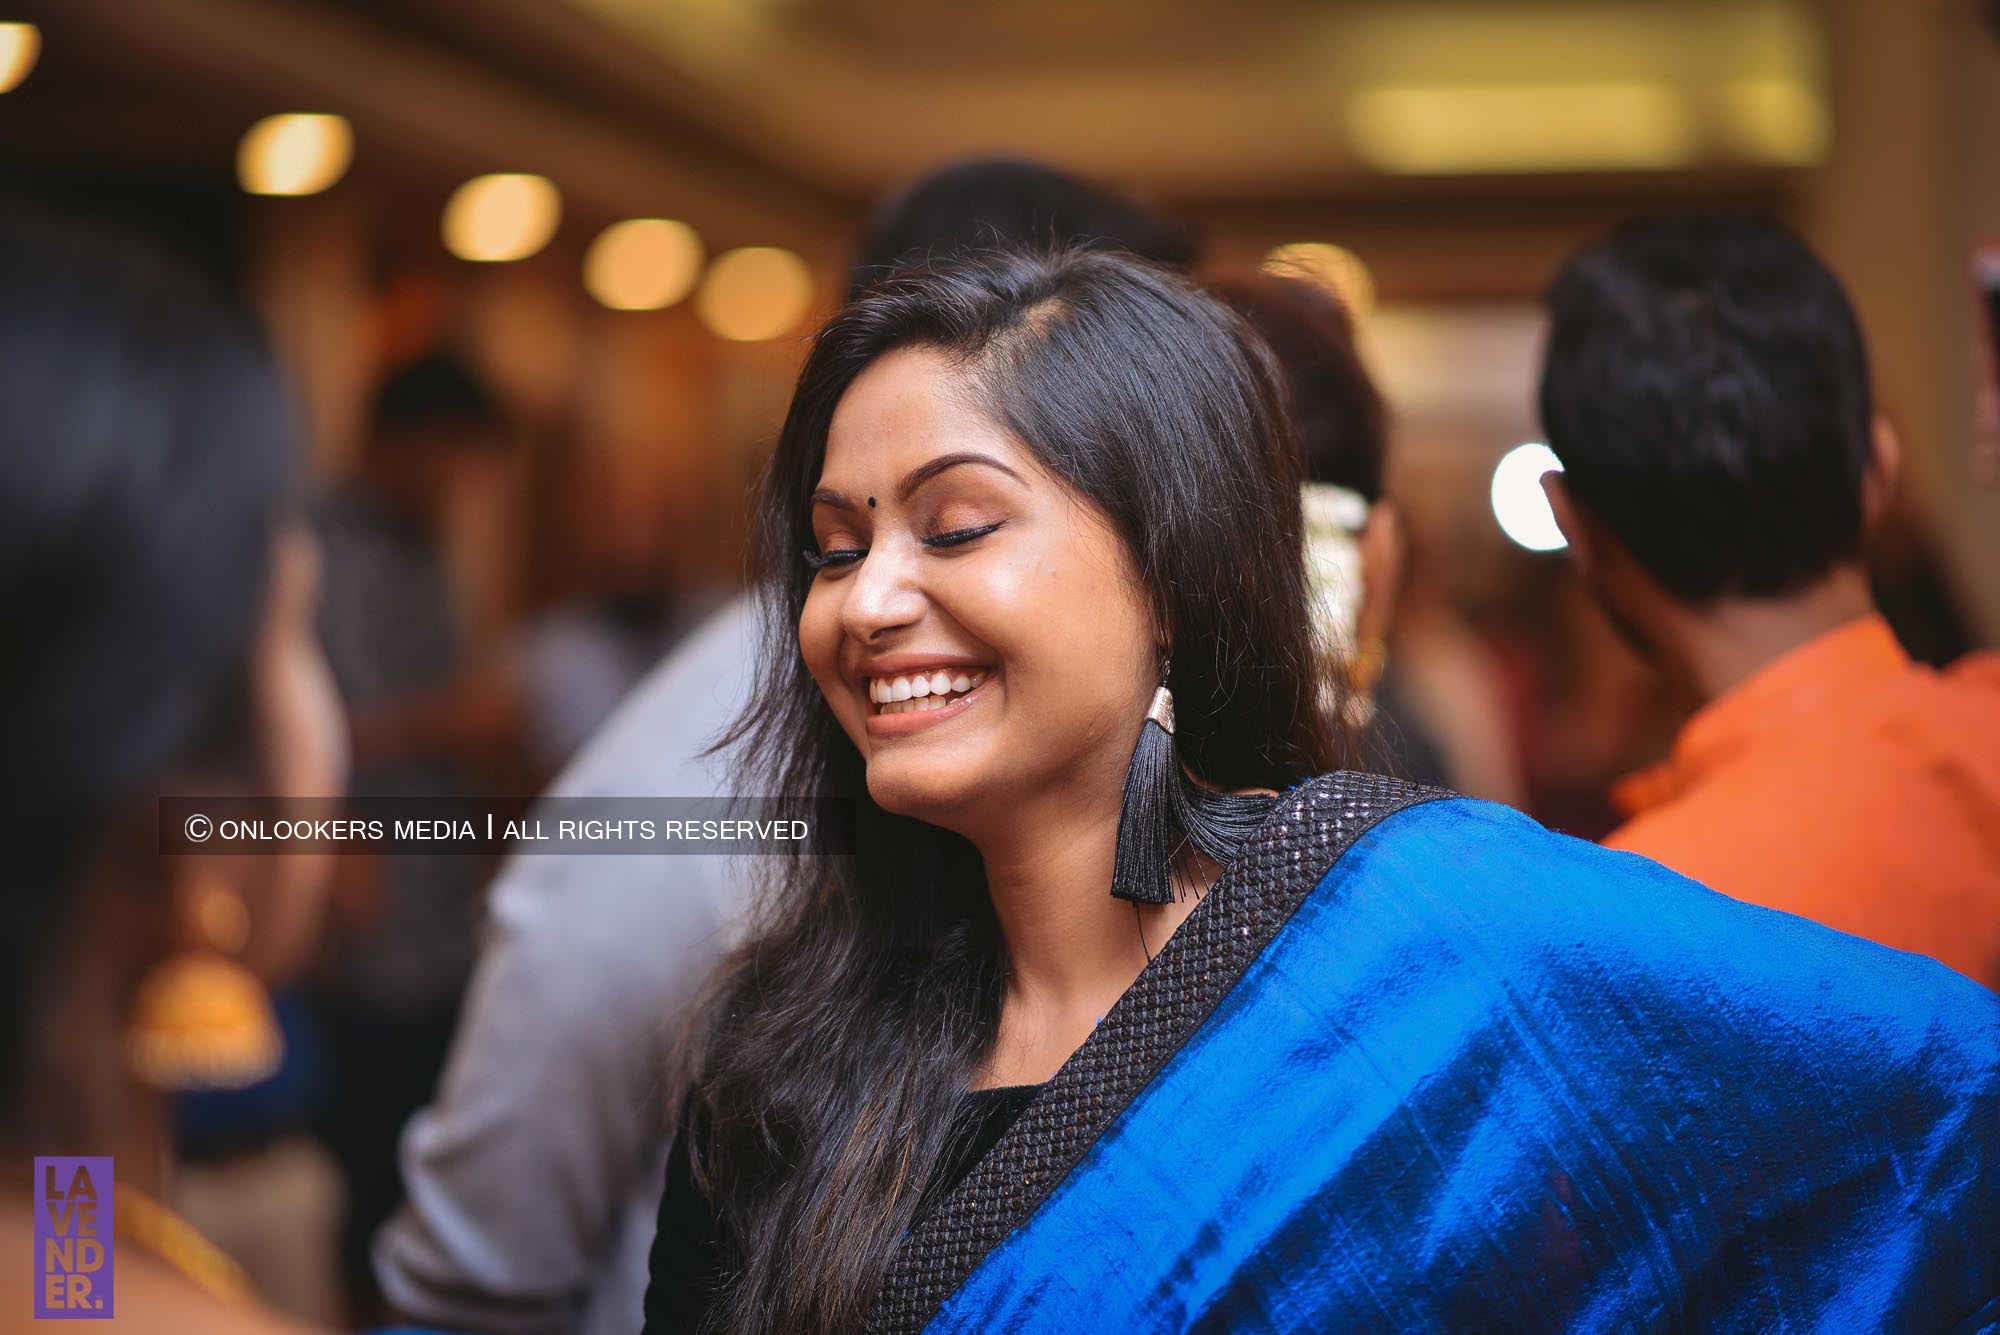 http://onlookersmedia.in/wp-content/uploads/2018/05/sreejith-vijay-wedding-stills-images-101.jpg